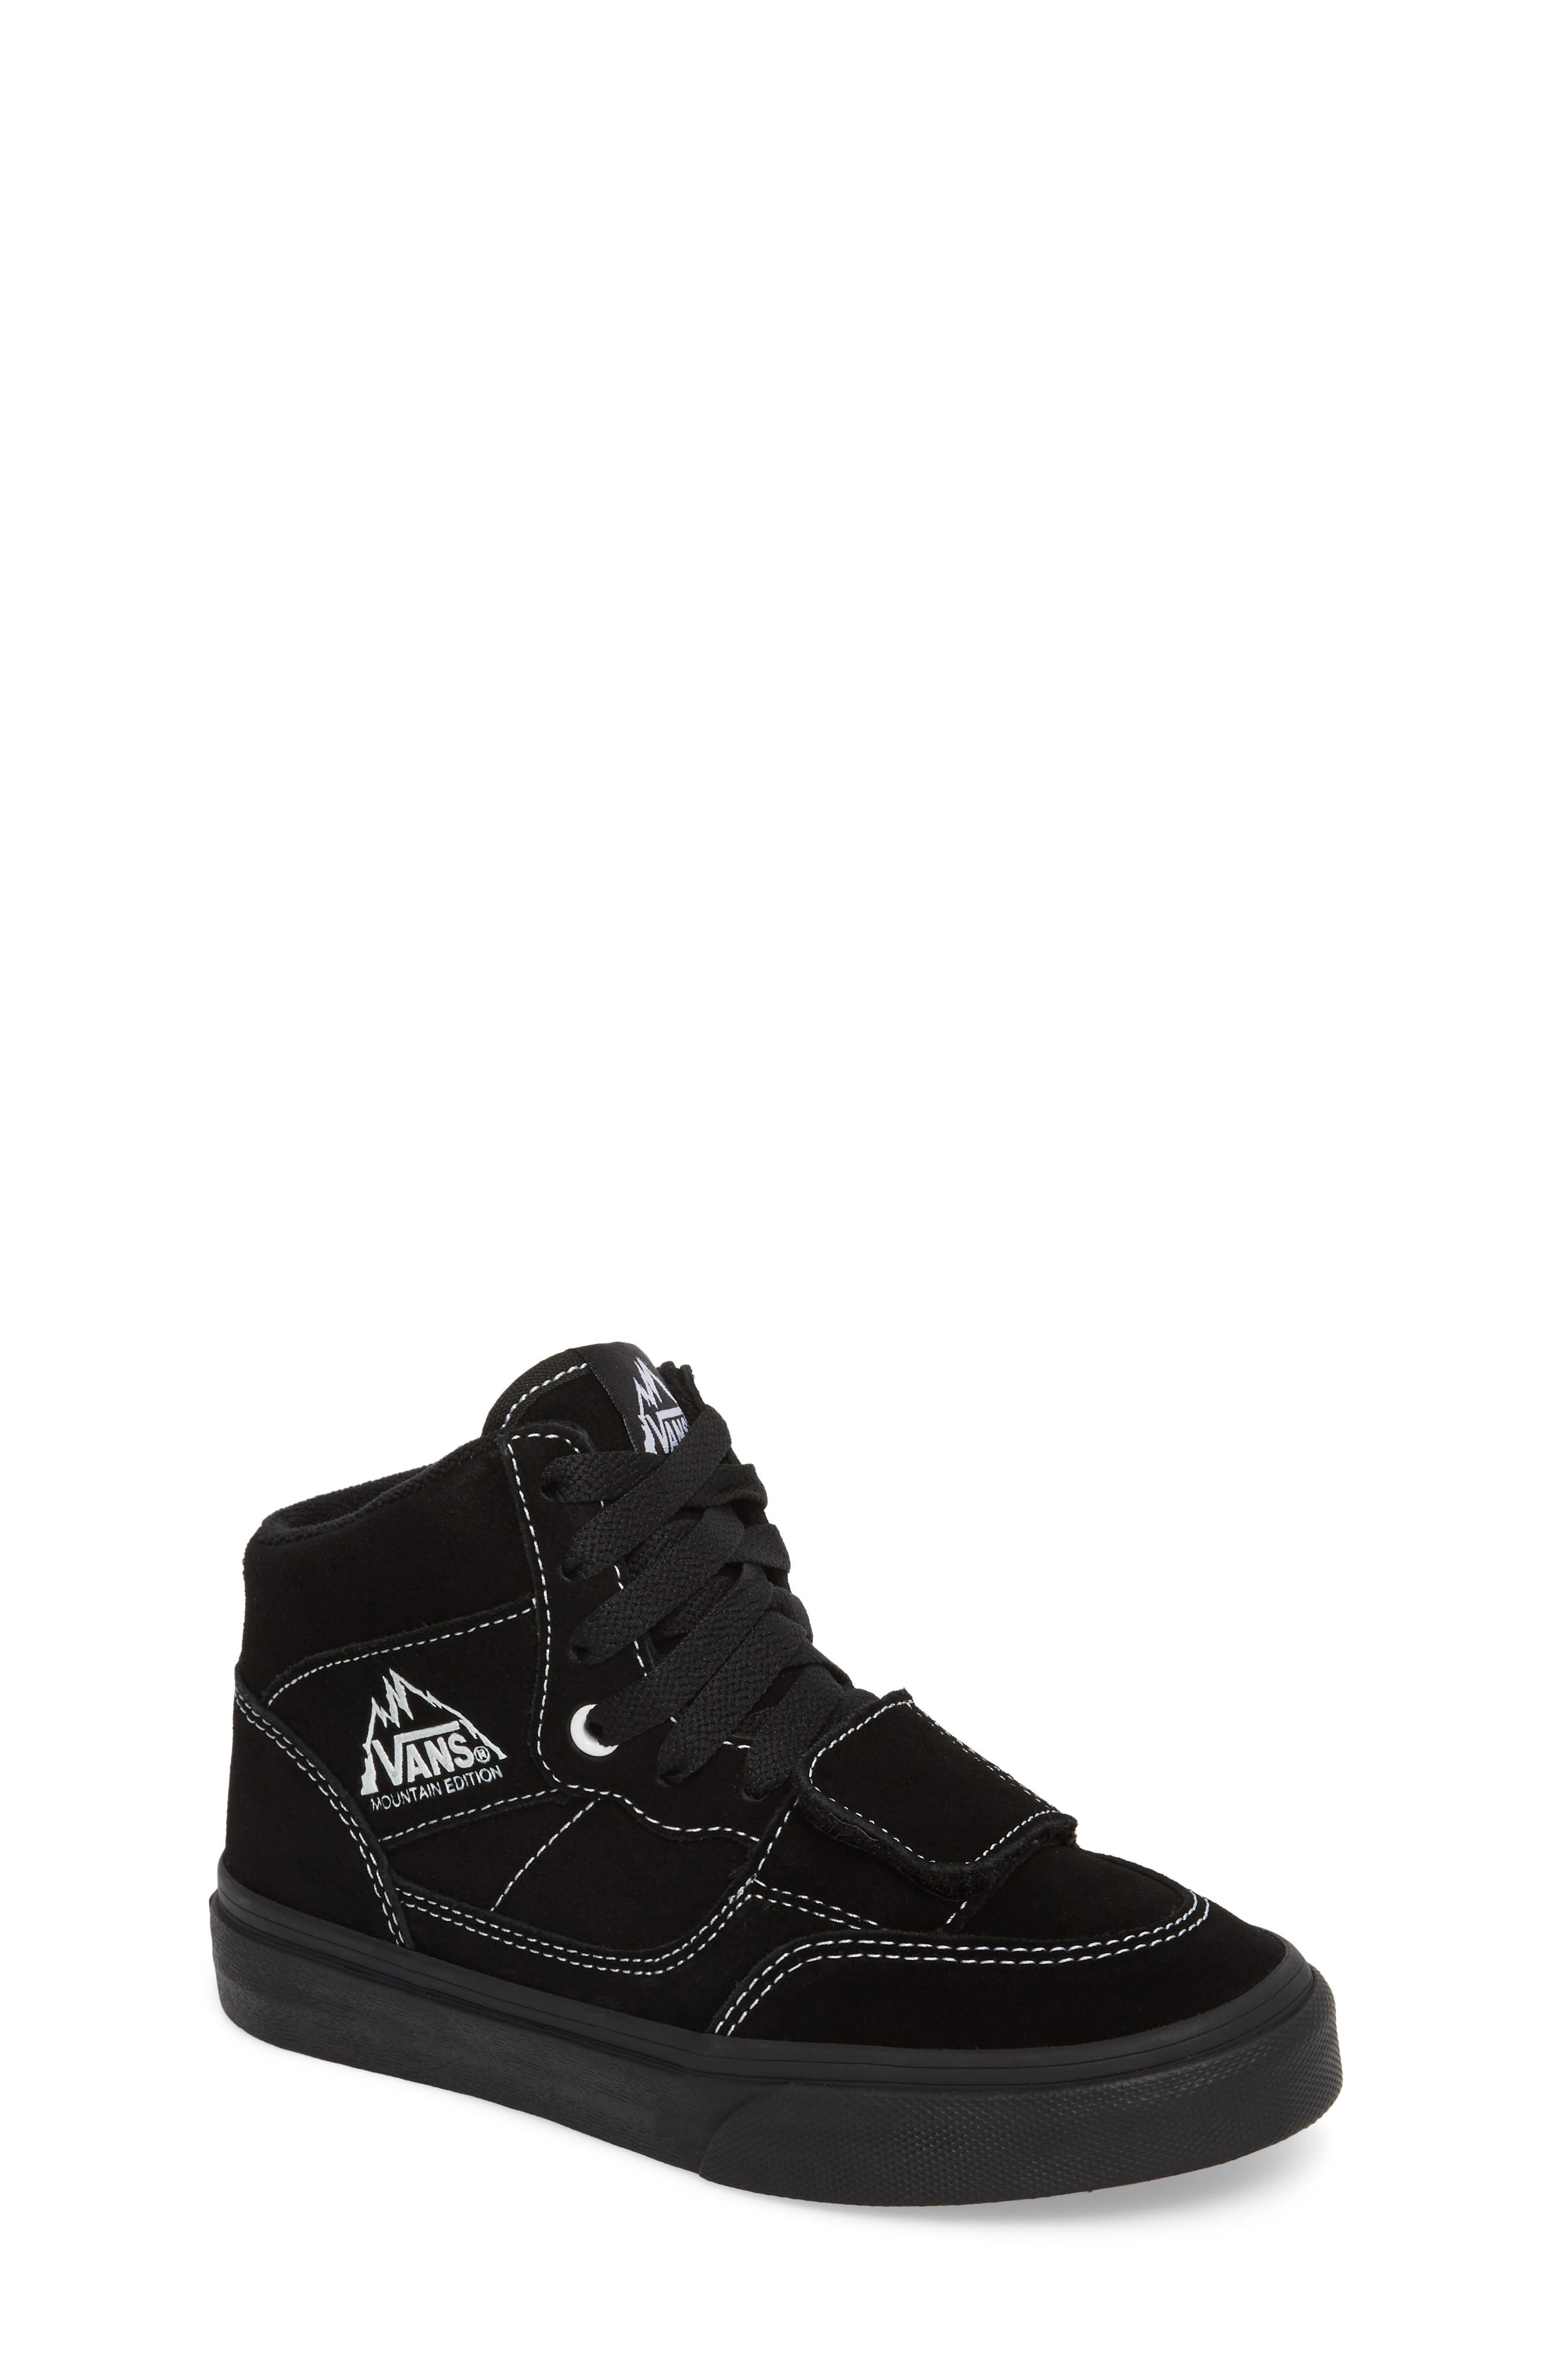 Mountain Edition Mid Top Sneaker,                         Main,                         color,